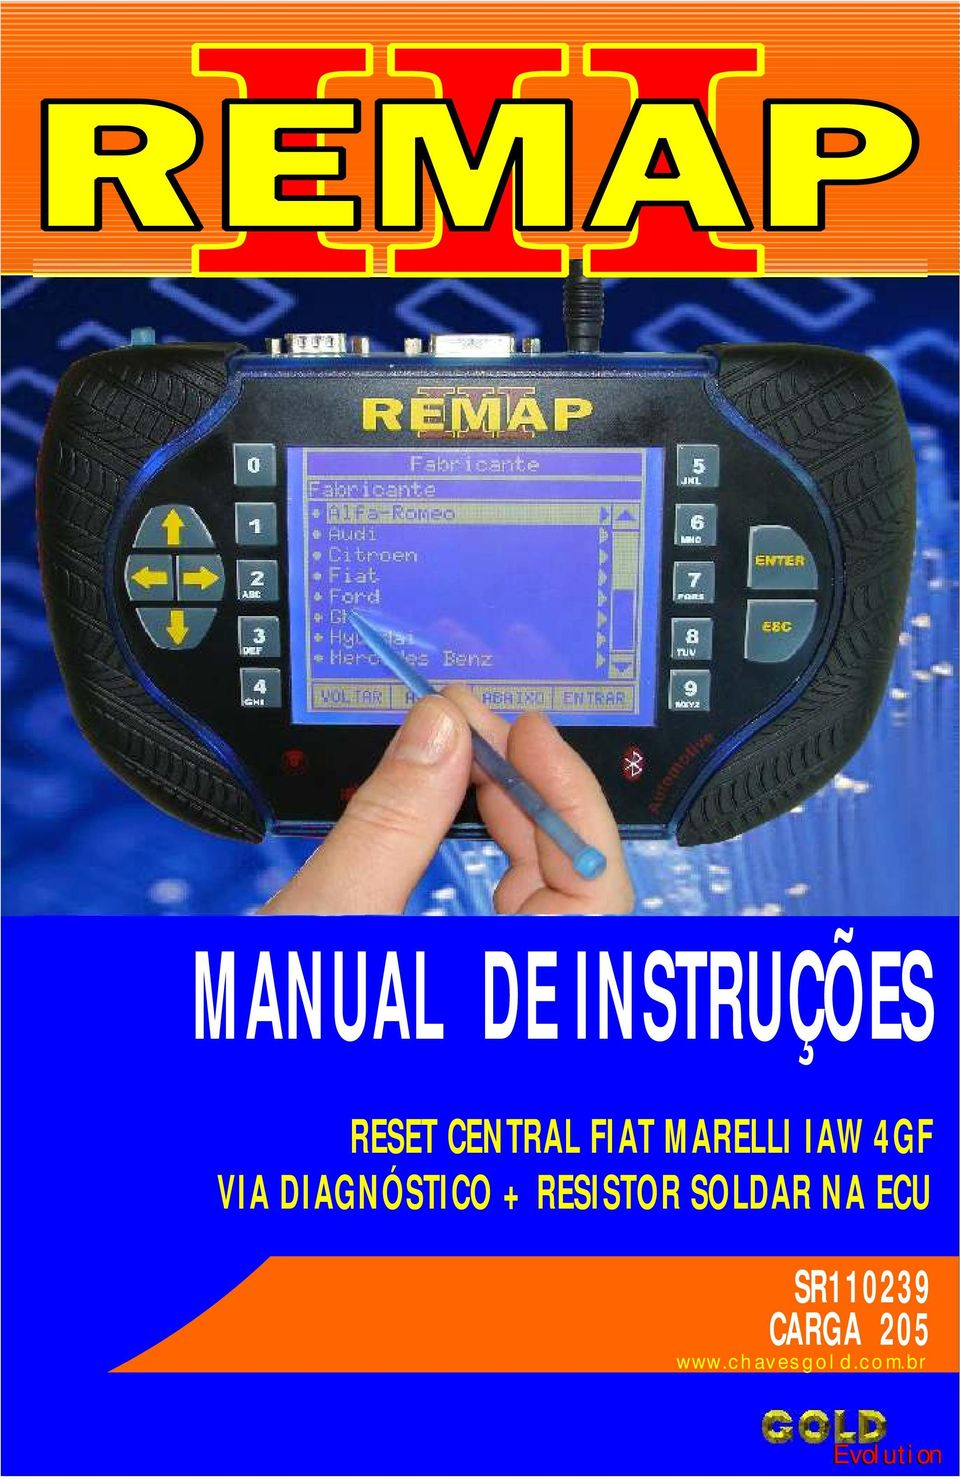 MANUAL DE INSTRUÇÕES RESET CENTRAL FIAT MARELLI IAW 4GF VIA